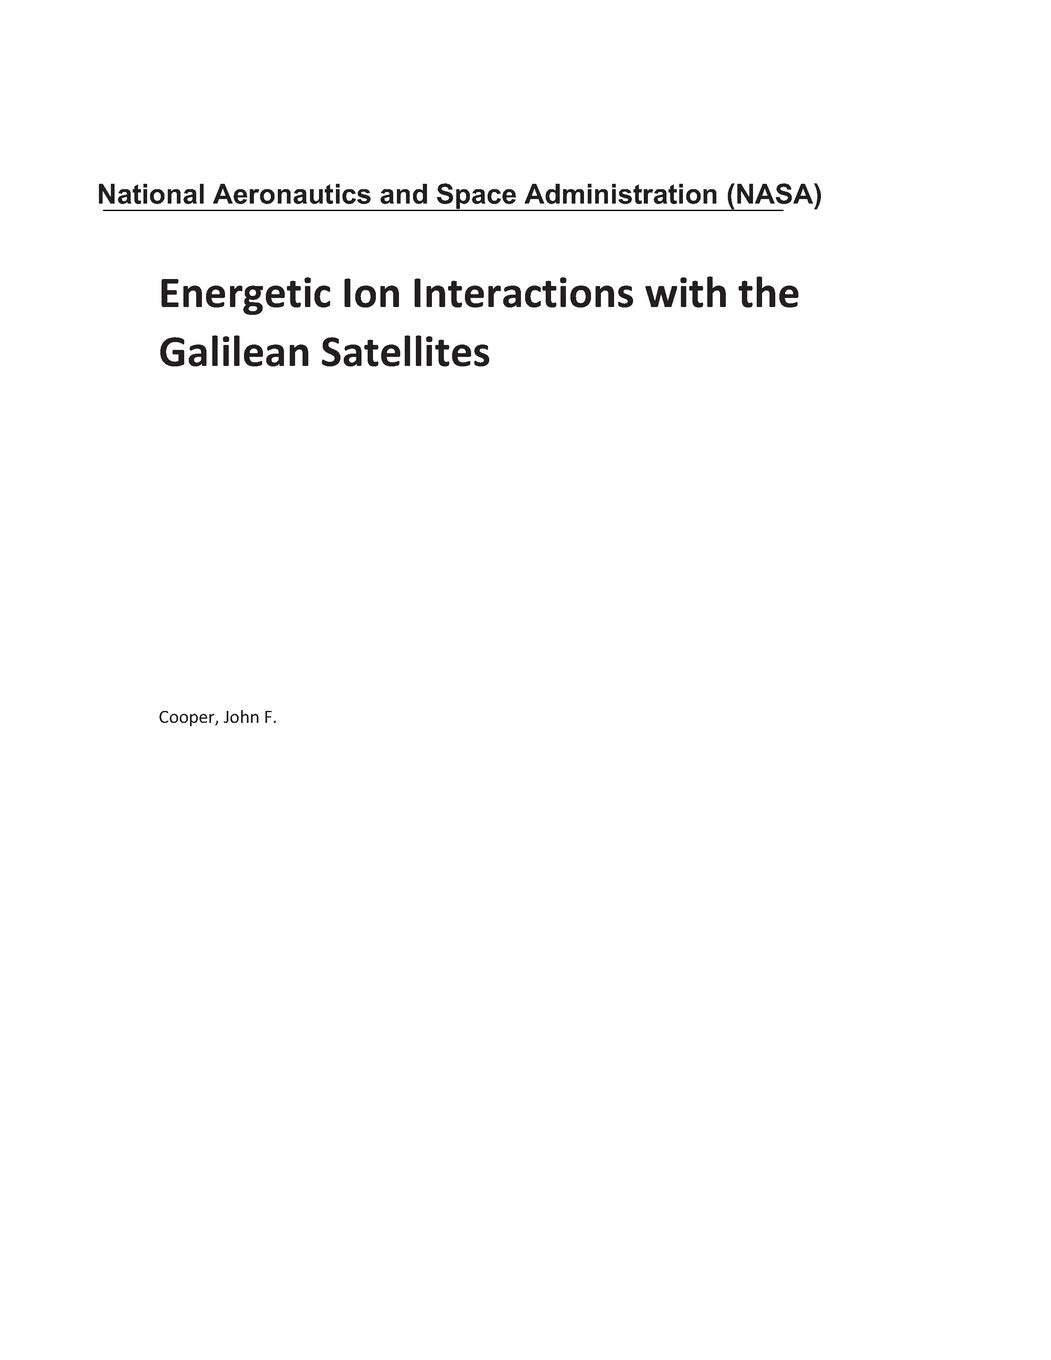 Energetic Ion Interactions with the Galilean Satellites Paperback – September 27, 2018